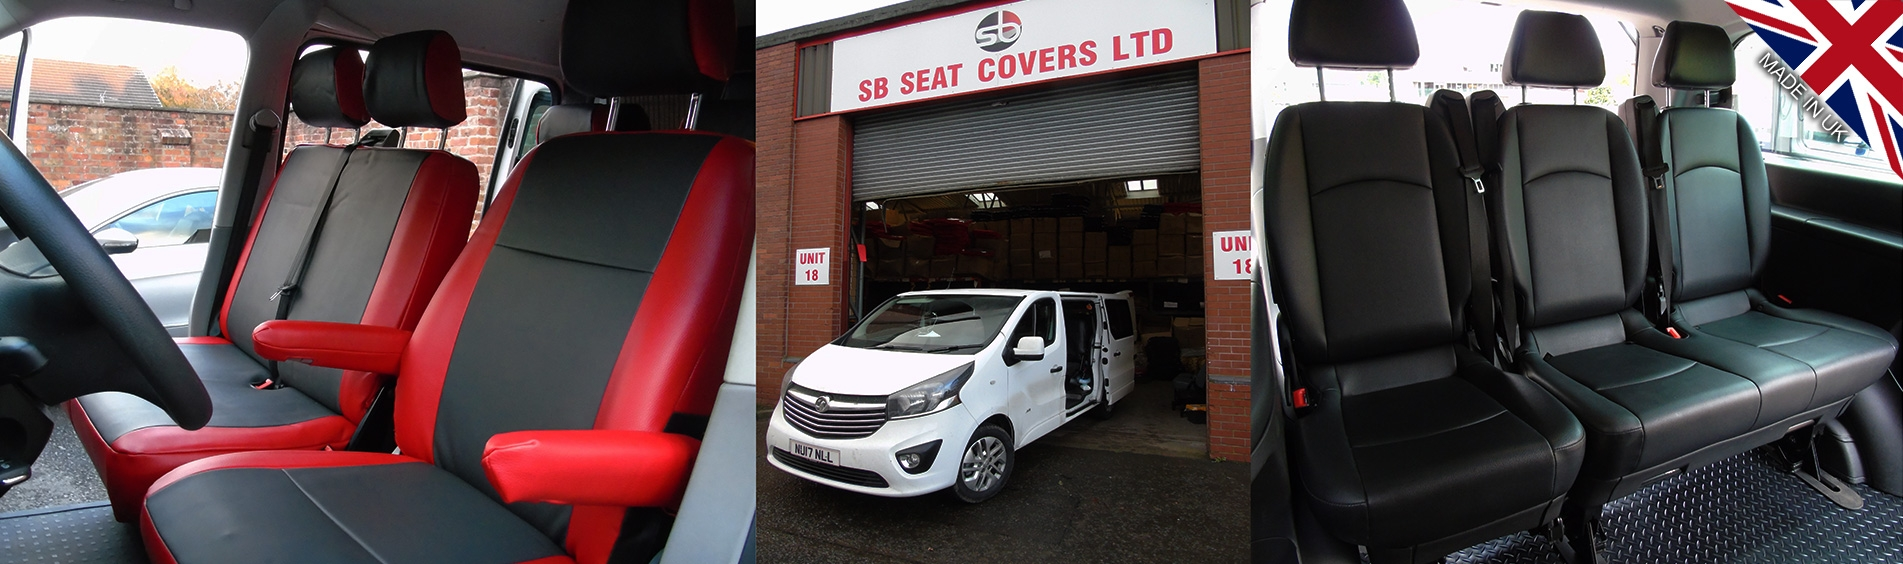 Seat Covers Made in UK